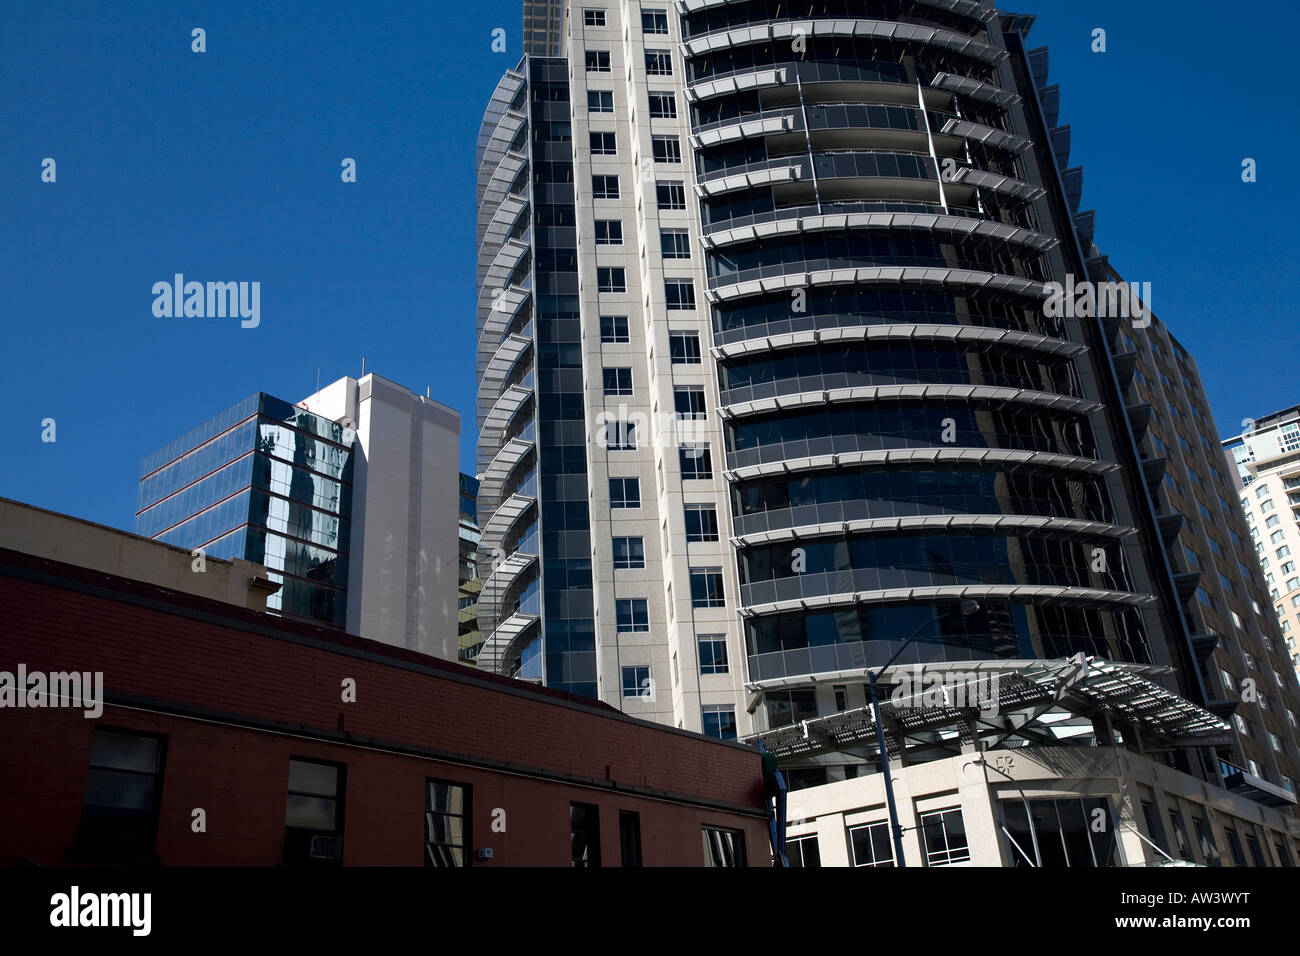 brisbane CBD and residential high rise apartments on edward street. - Stock Image